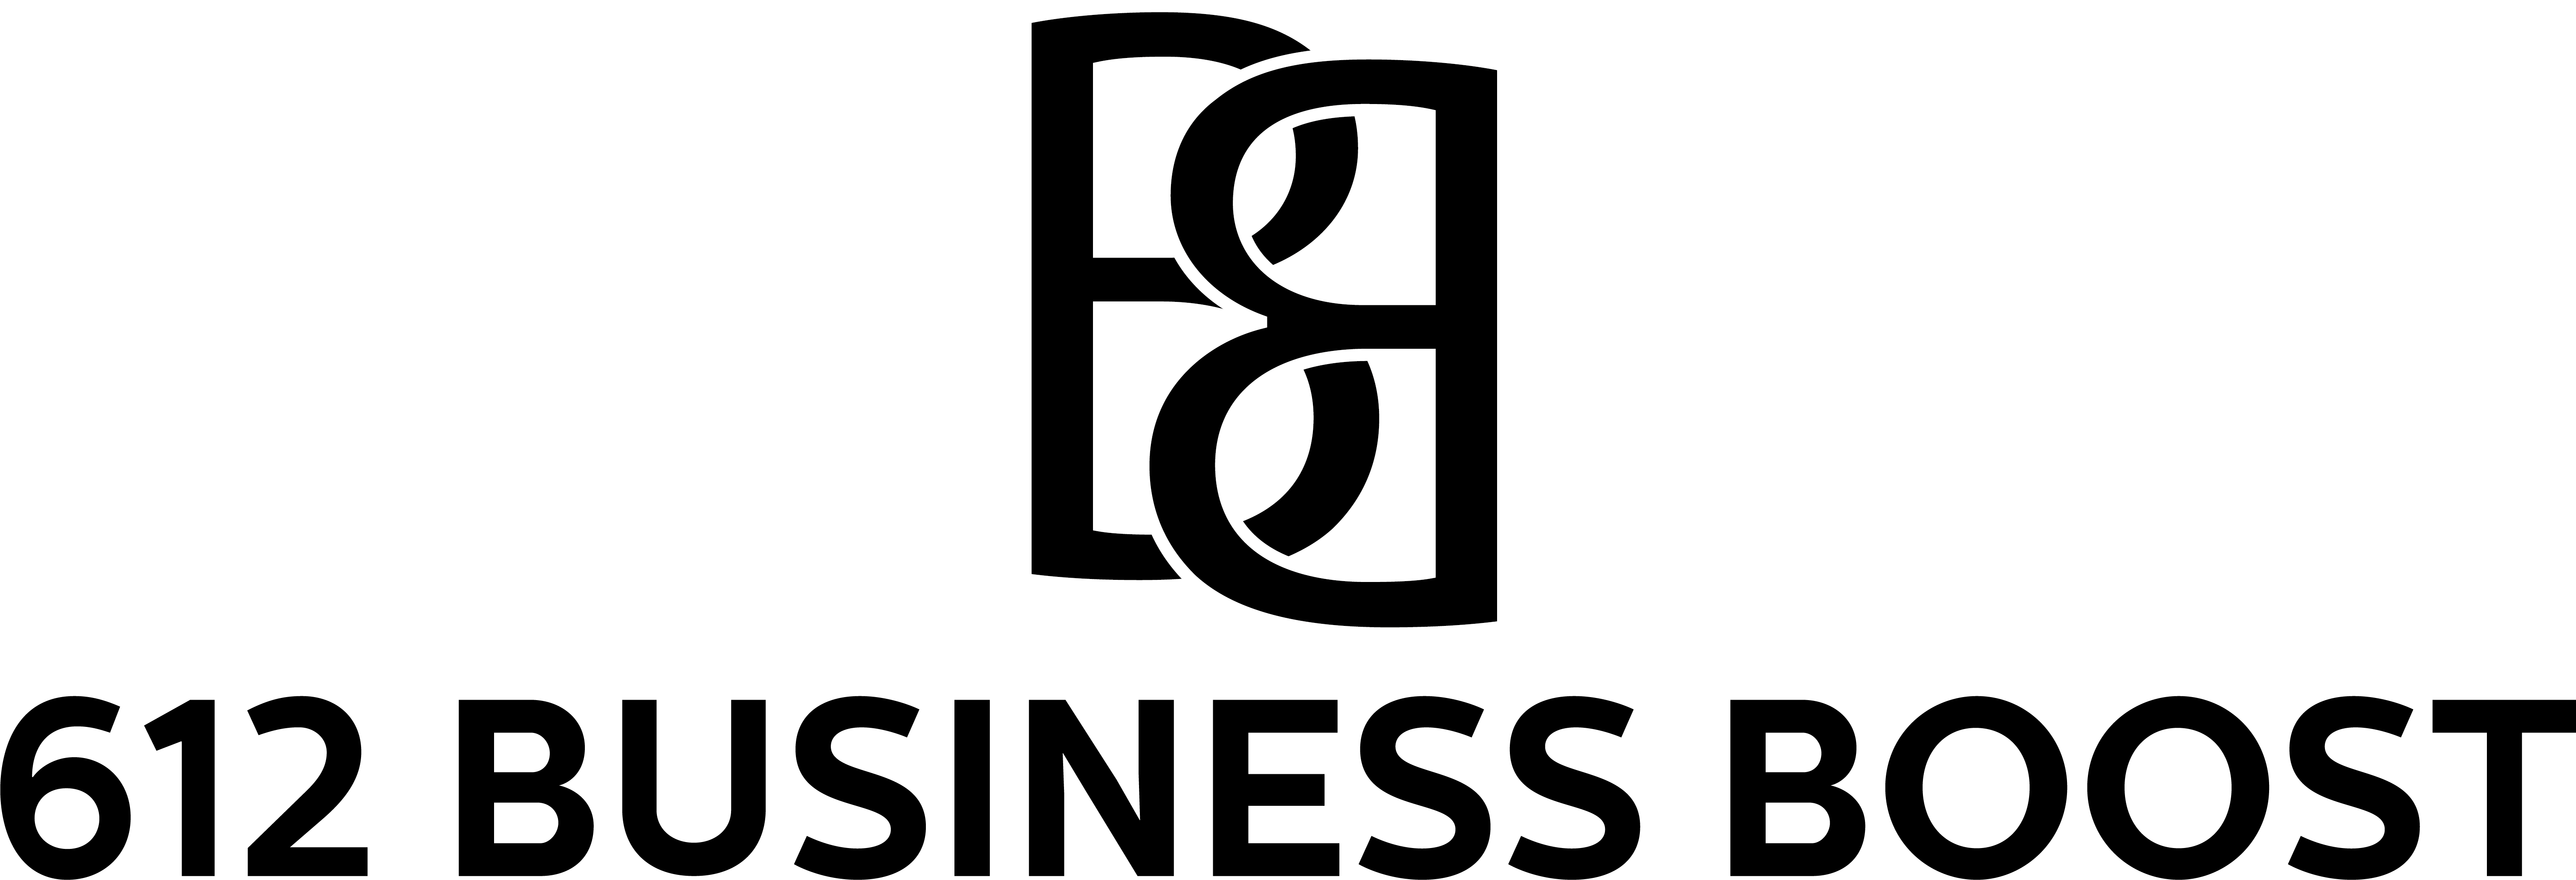 612 Business Boost